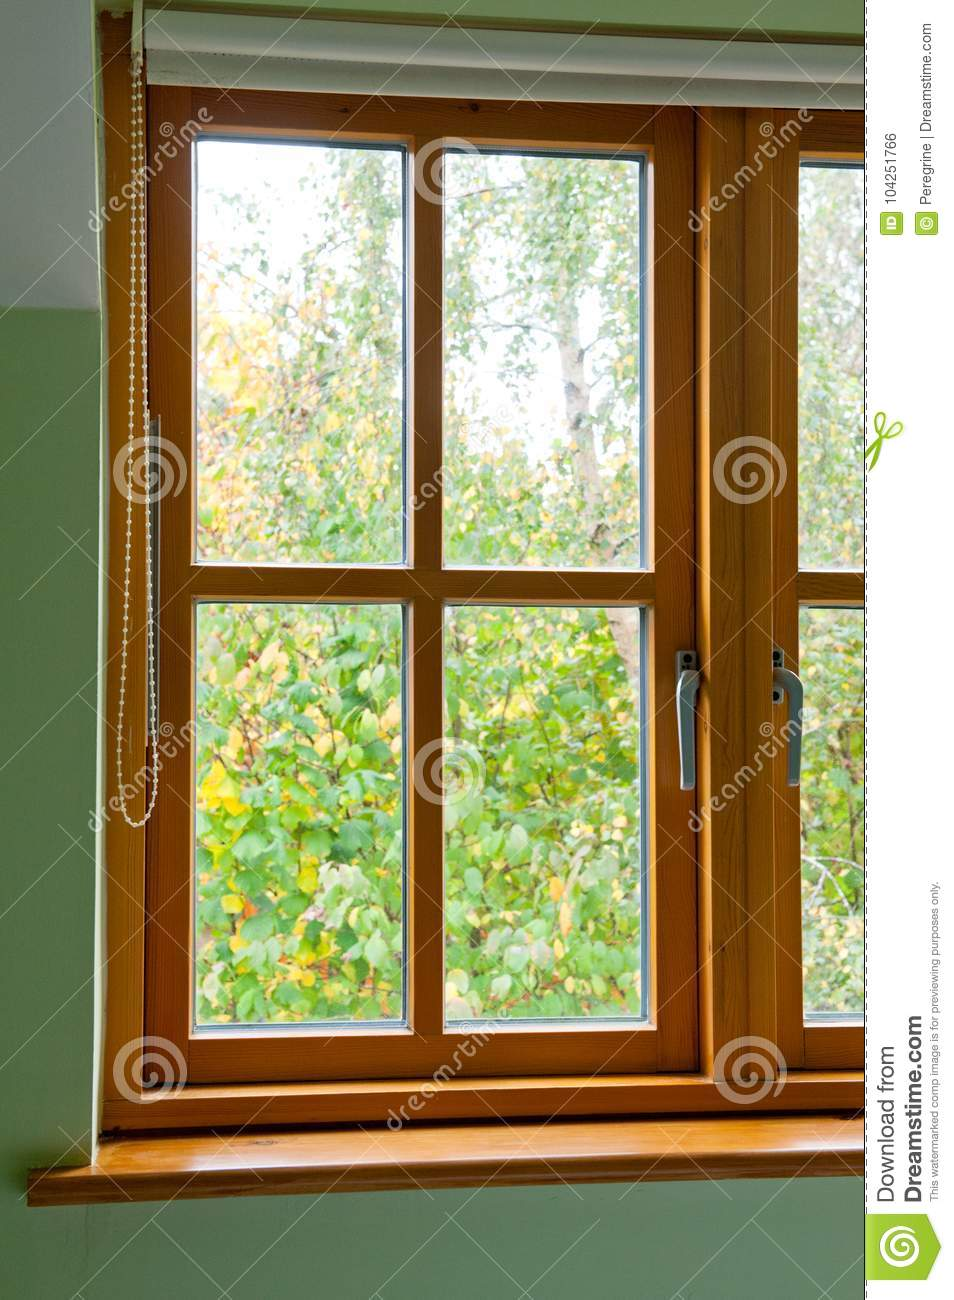 Business Design A House And Window: Modern Wooden Window Stock Photo. Image Of Design, Real